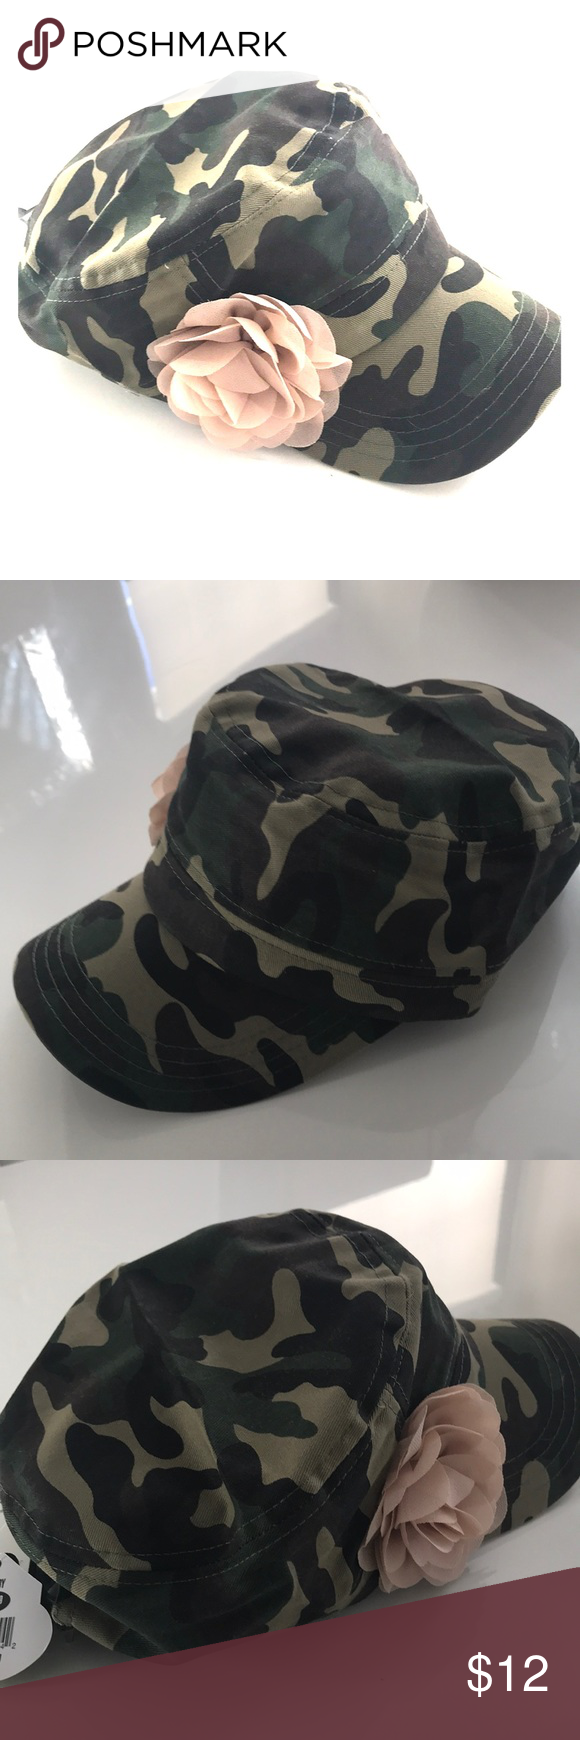 Pugs Gear Shelby Women Camo Army Floral Hat OS New with tags Item may have  shelf wear One size 100% cotton posh1 Accessories Hats 8c1f01245